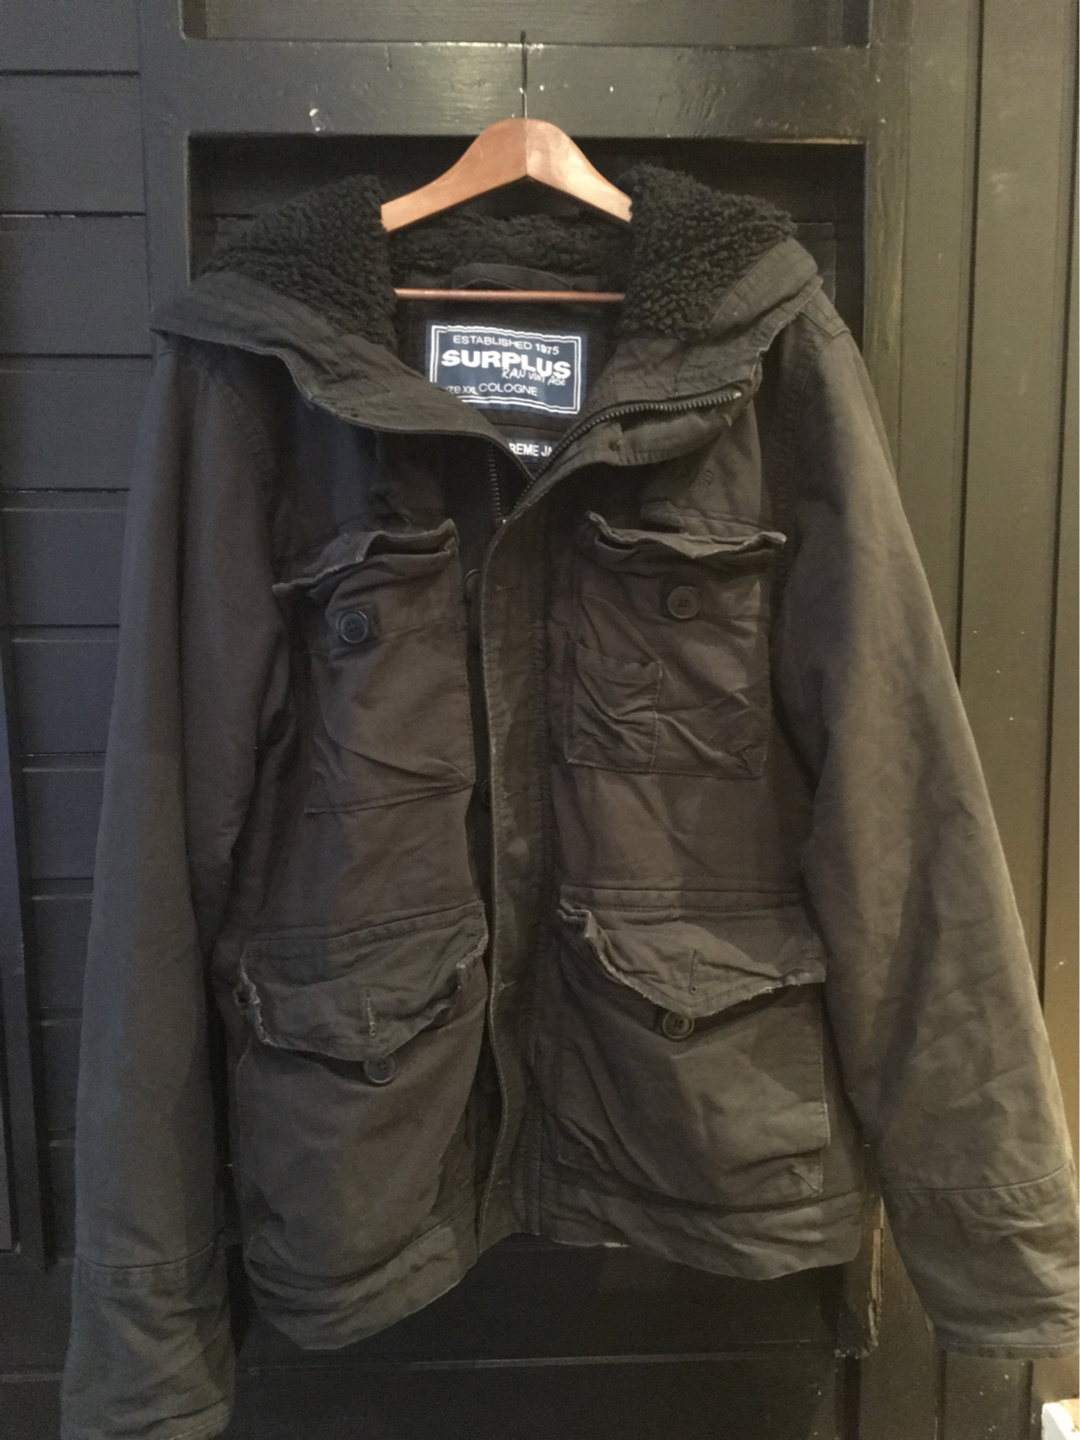 Women's coats & jackets - SURPLUS photo 1